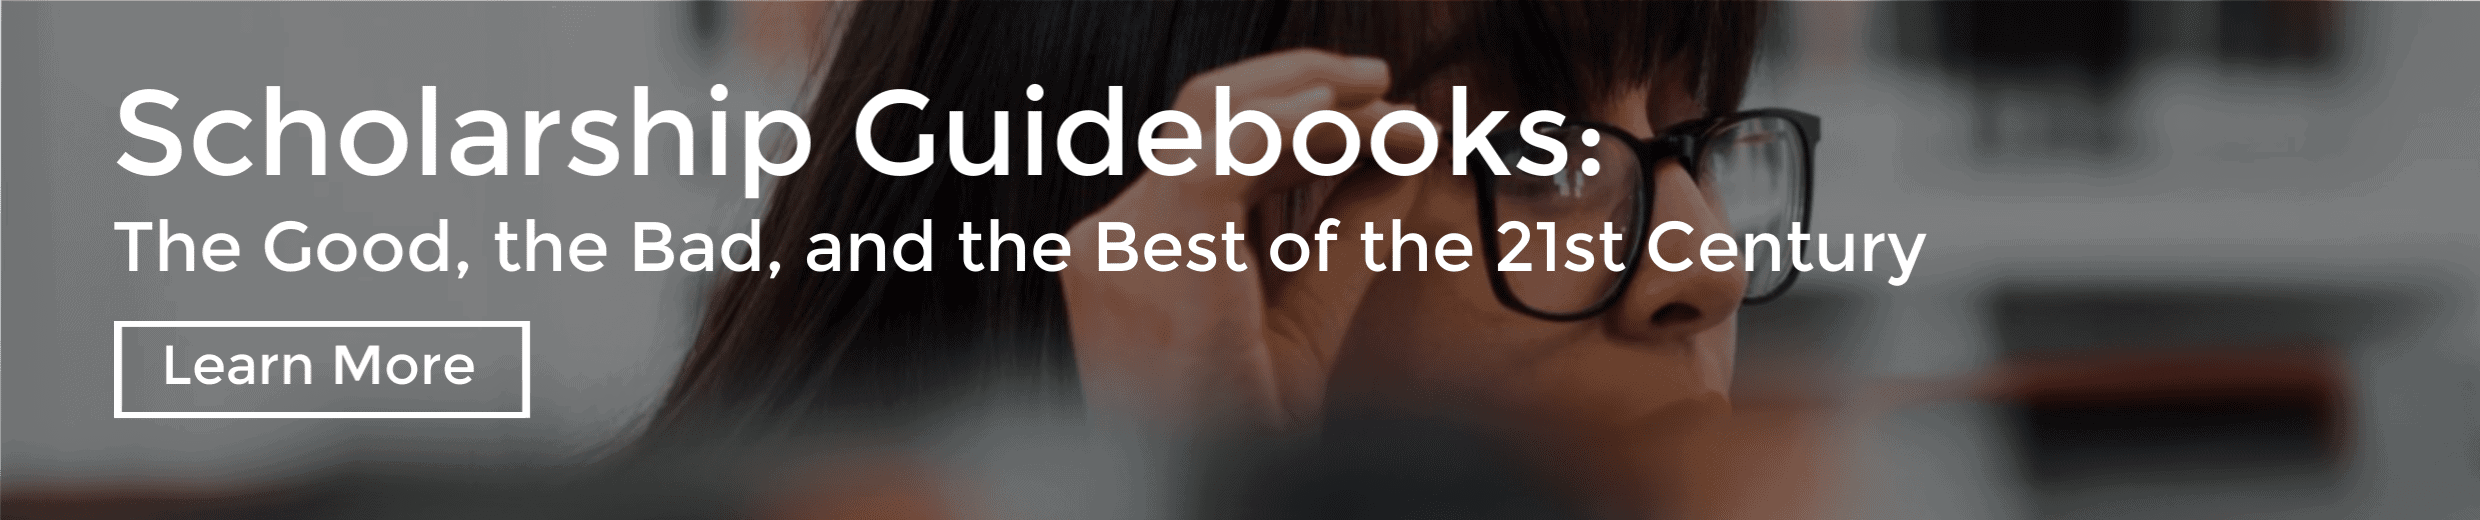 Scholarship Guidebooks: The Good, the Bad, and the Best of the 21st Century